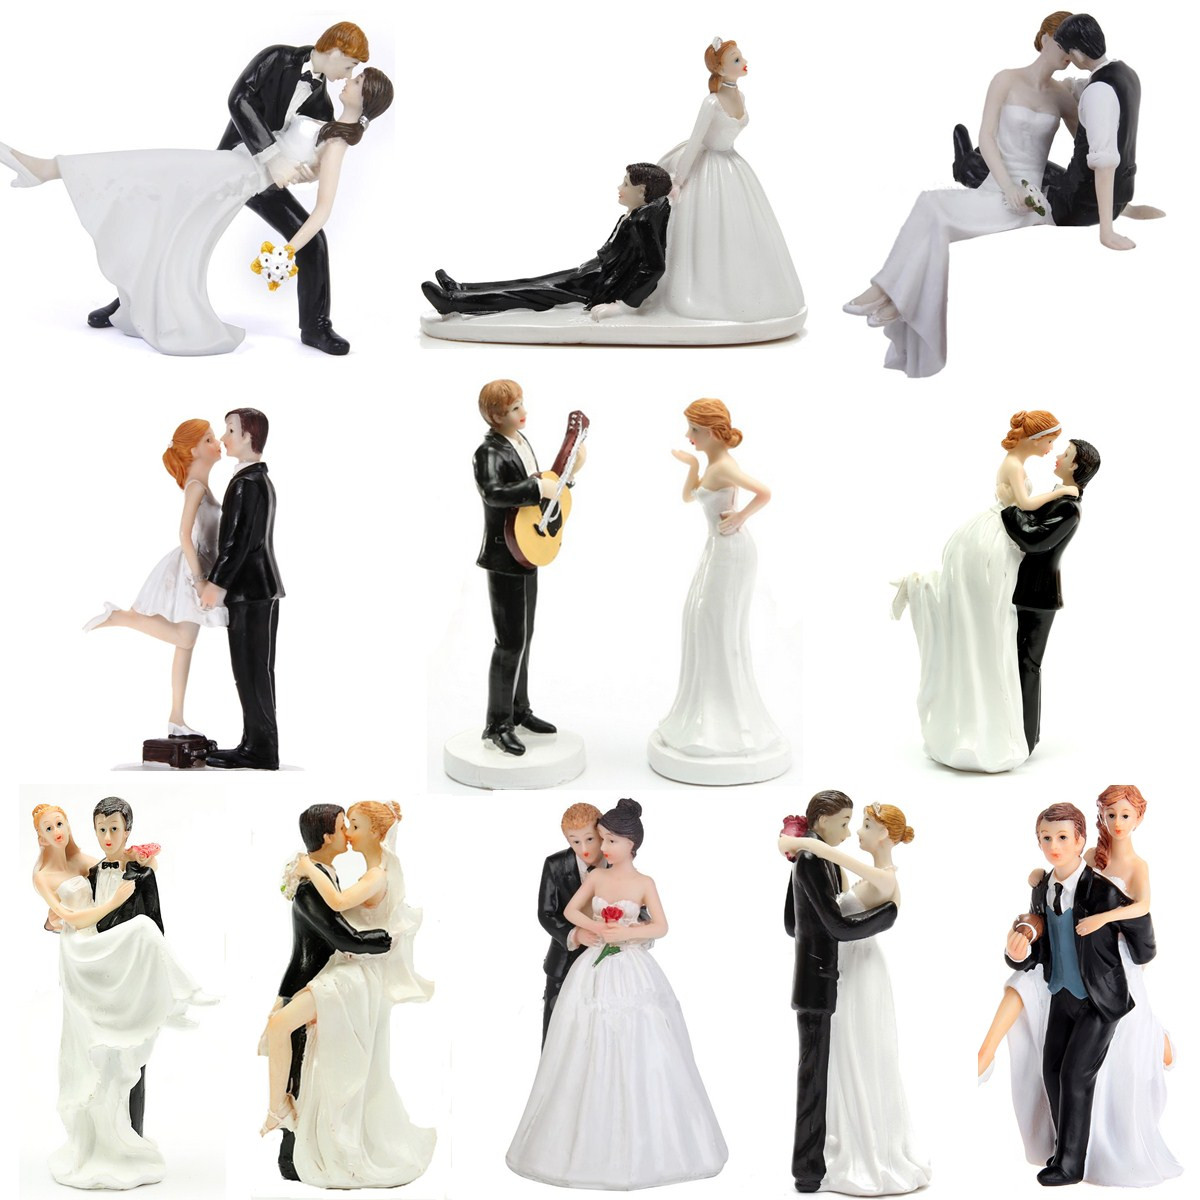 How To Make Your Own Wedding Cake Topper